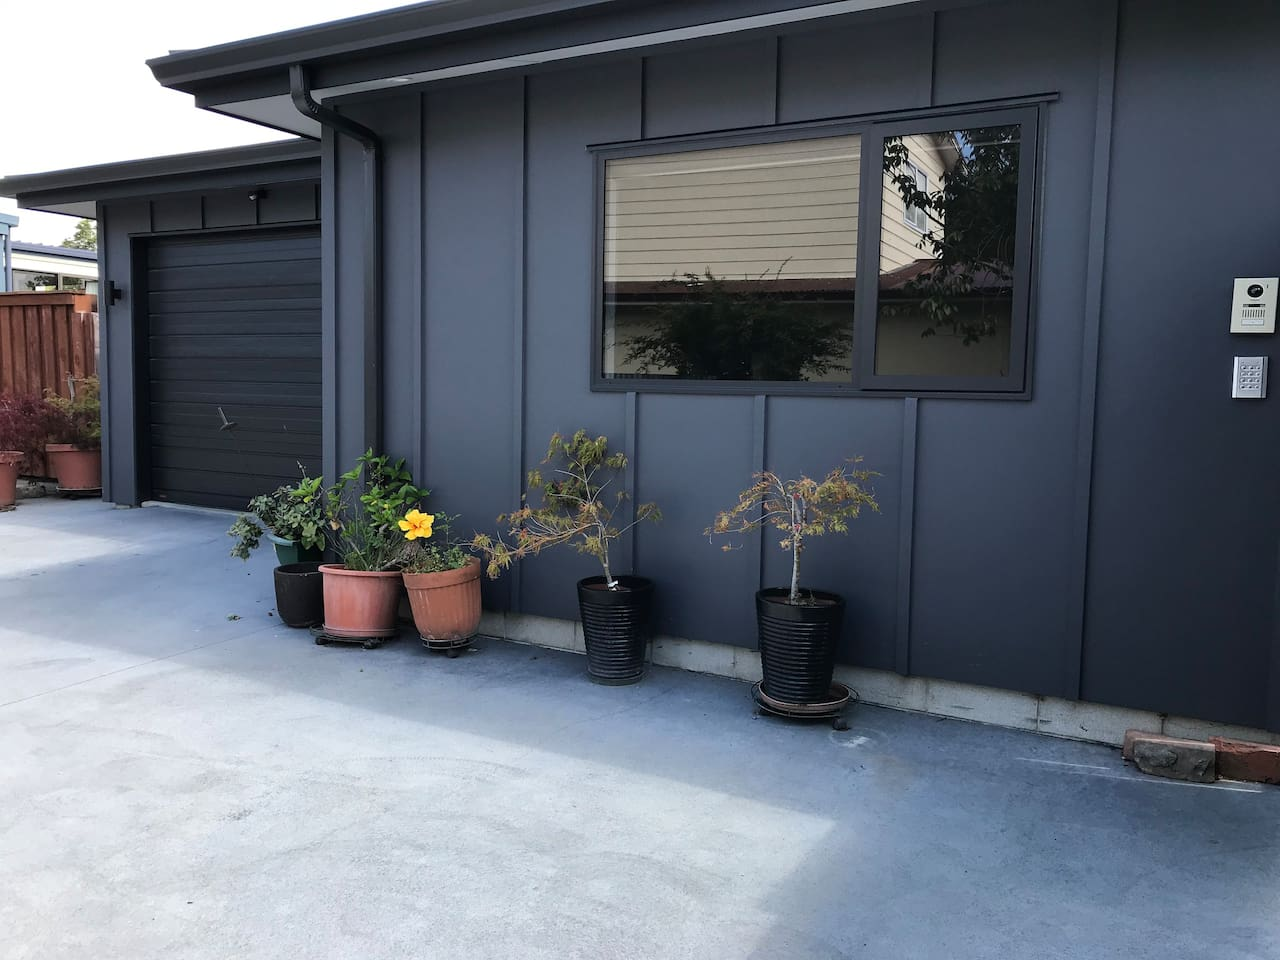 My home. Garage with access to the house an parking space for a second car under this window .Access keypad on the wall with bell